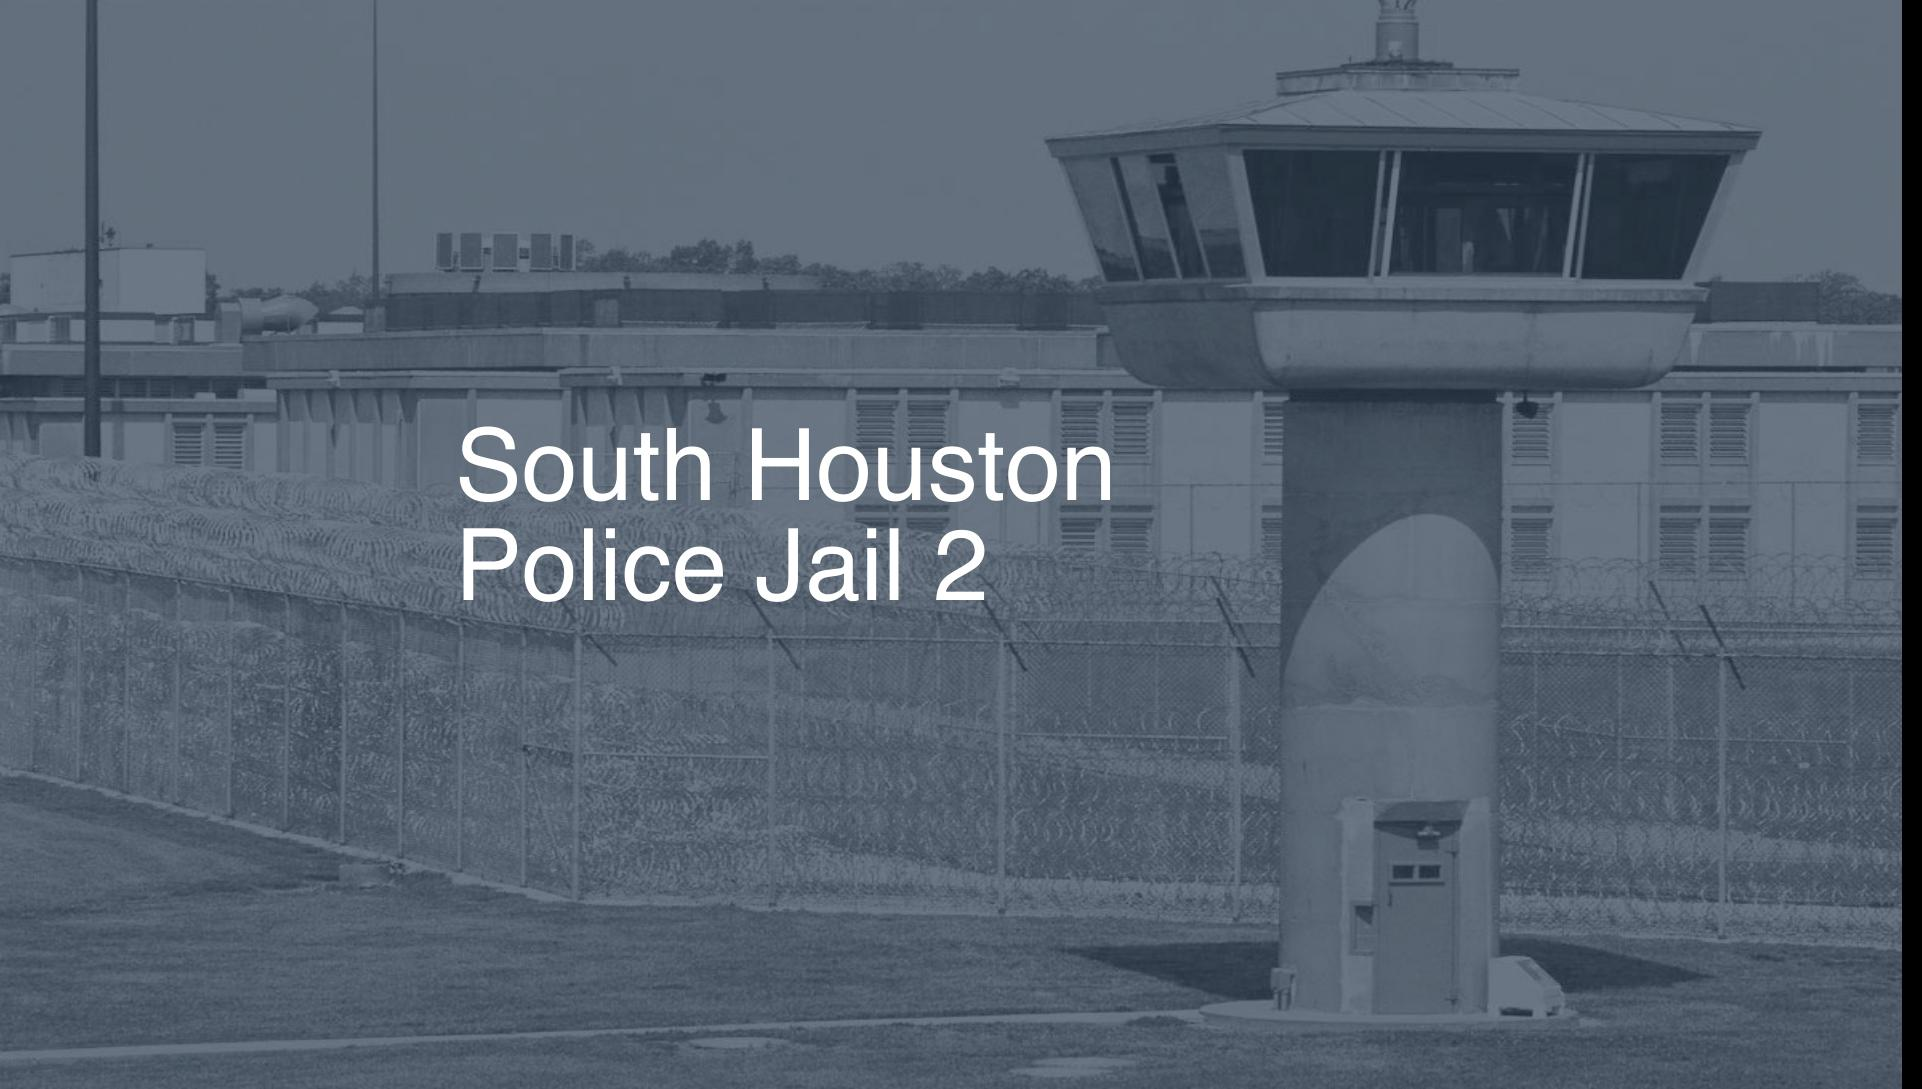 South Houston Police Jail Inmate Search, Lookup & Services - Pigeonly